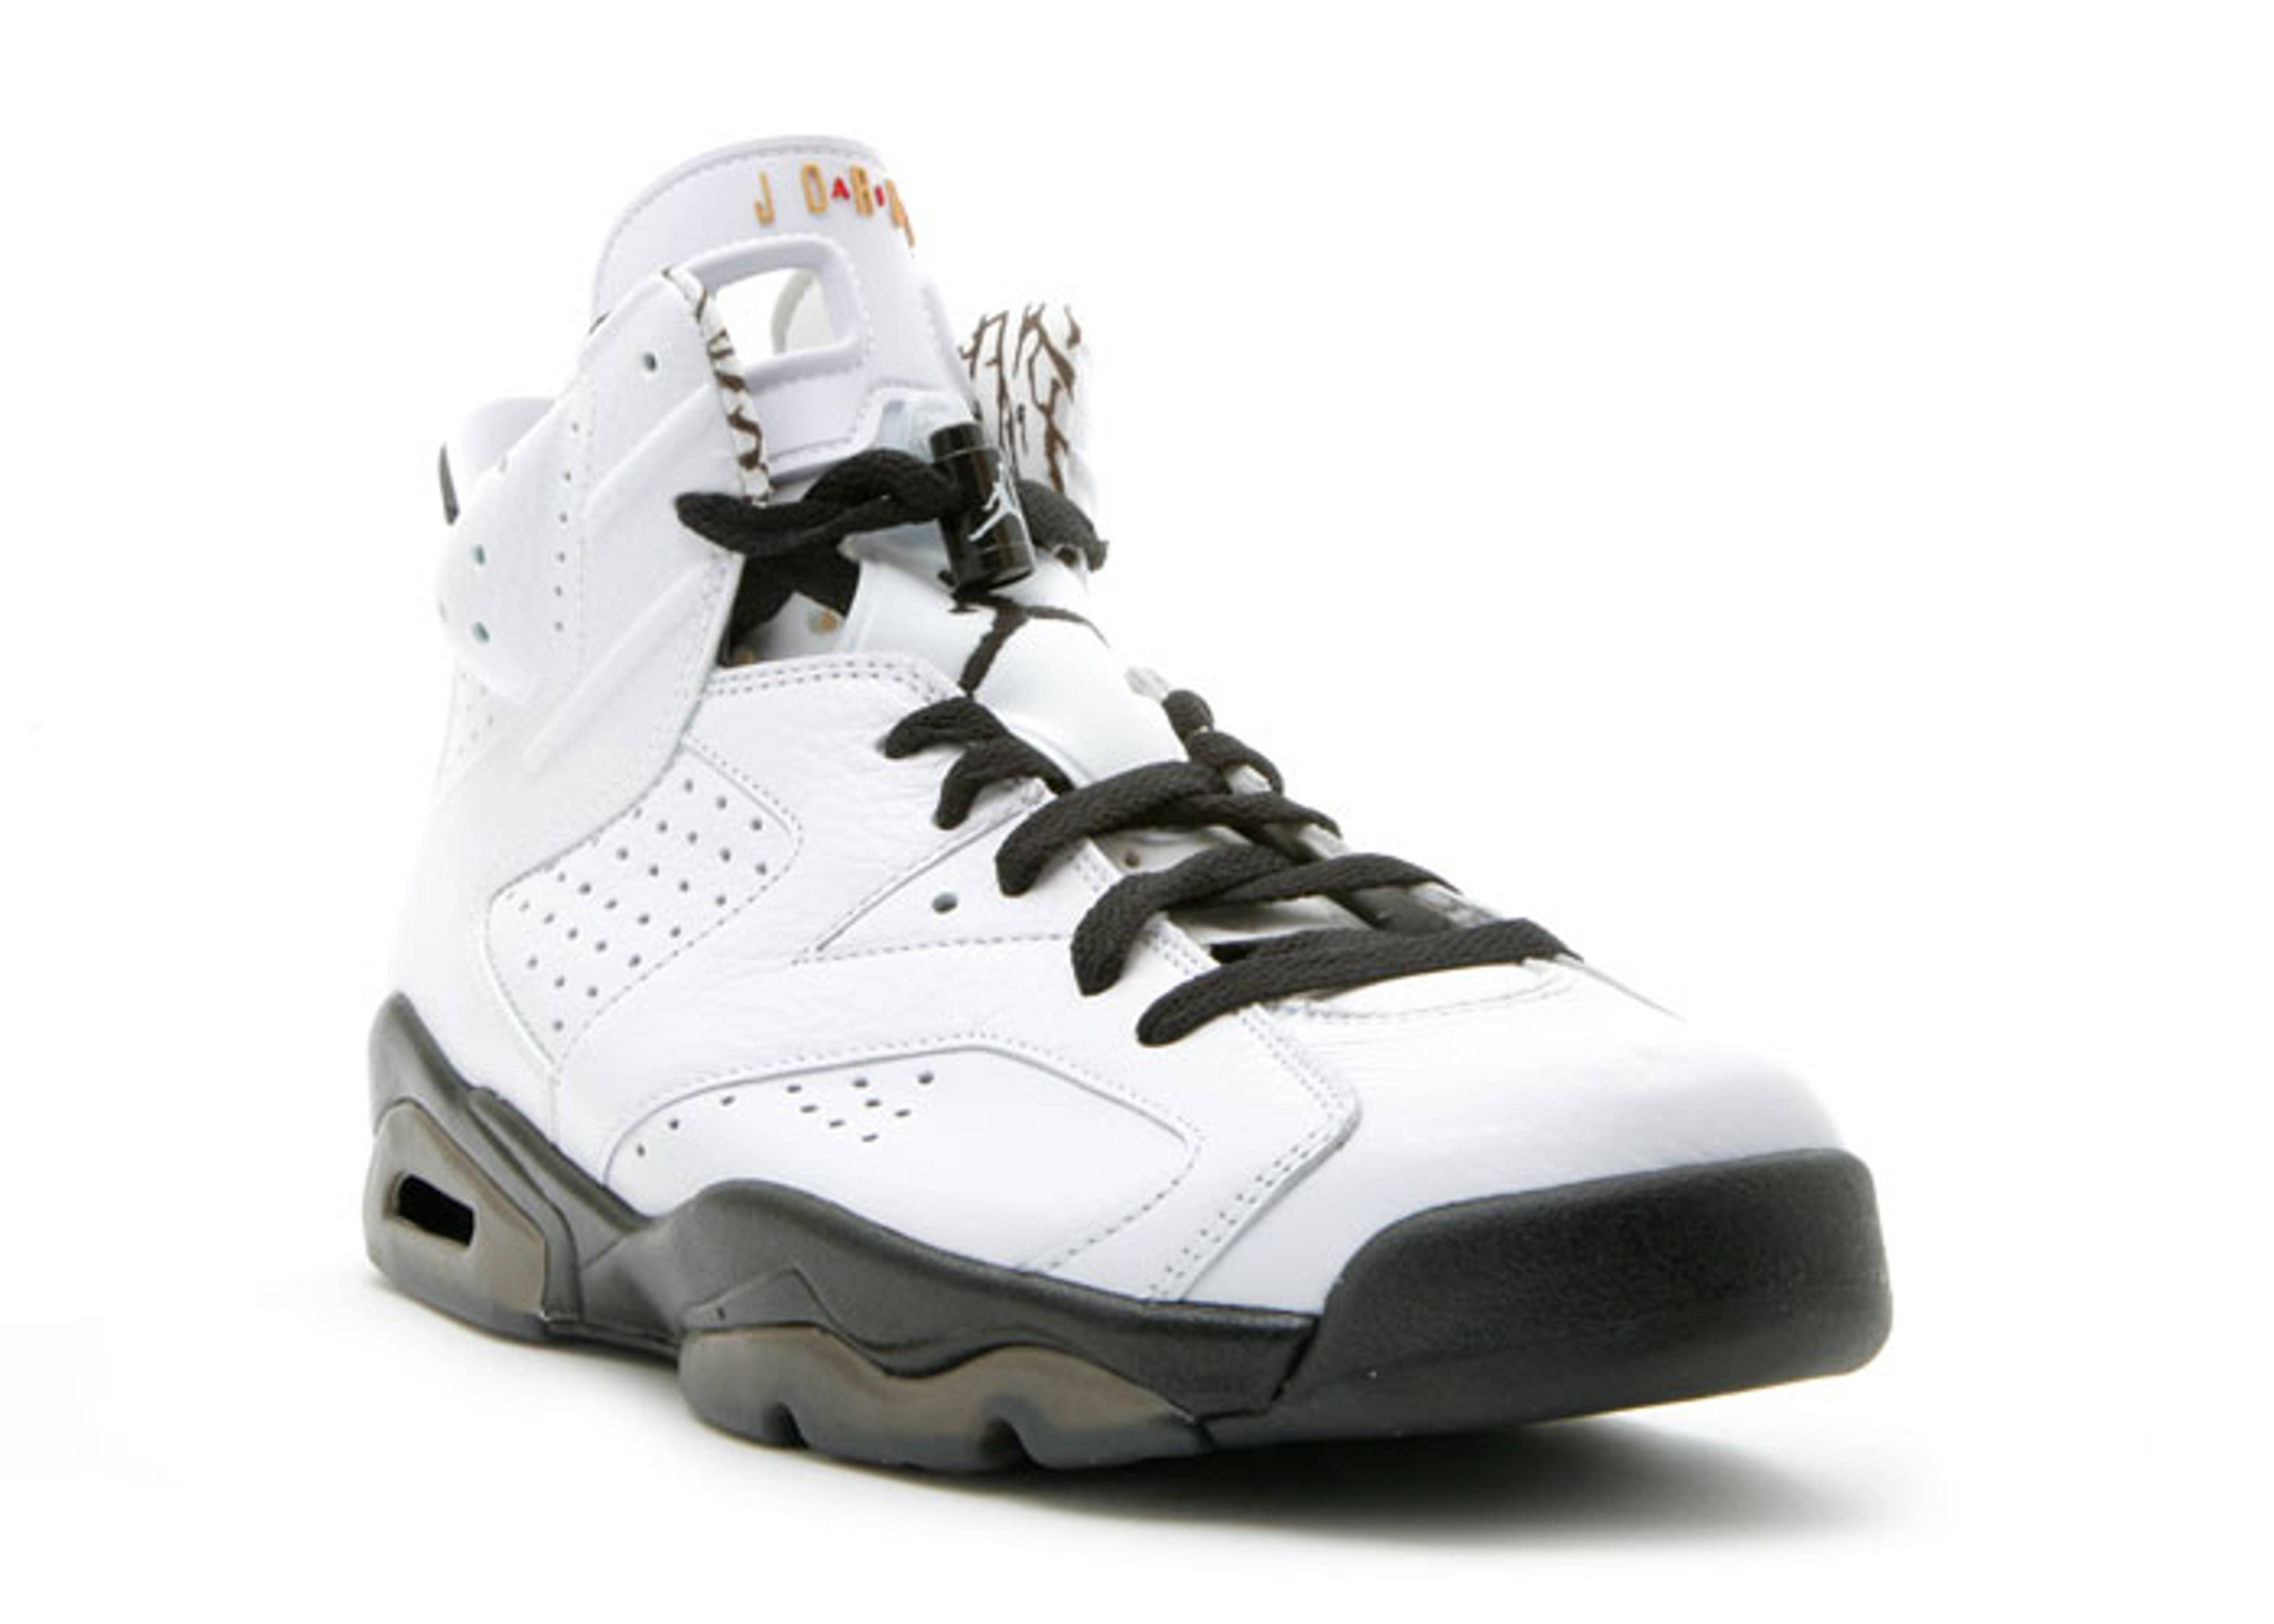 30279 7adf7 air jordan vi six rings motorsports pack 2009 factory outlet 67f6559a5202